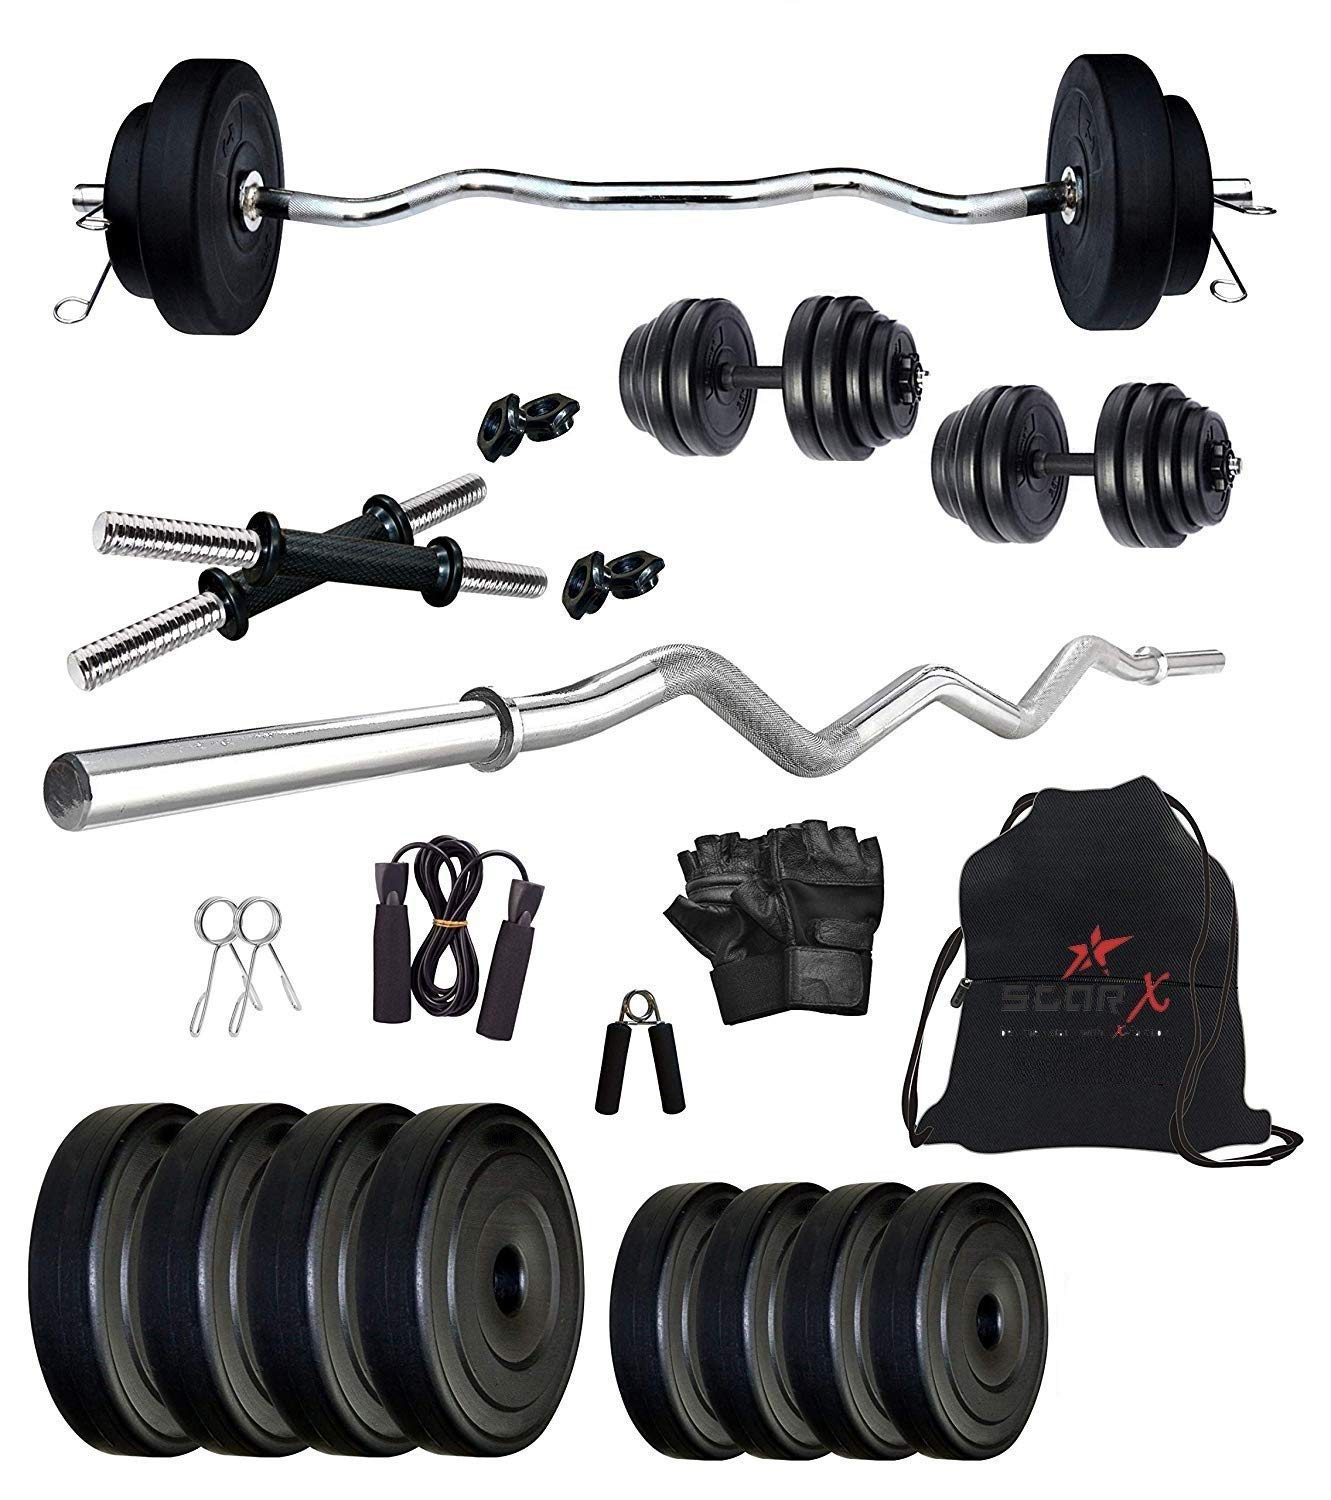 Star X 12 Kg Home Gym Combo with 3 Feet Rod